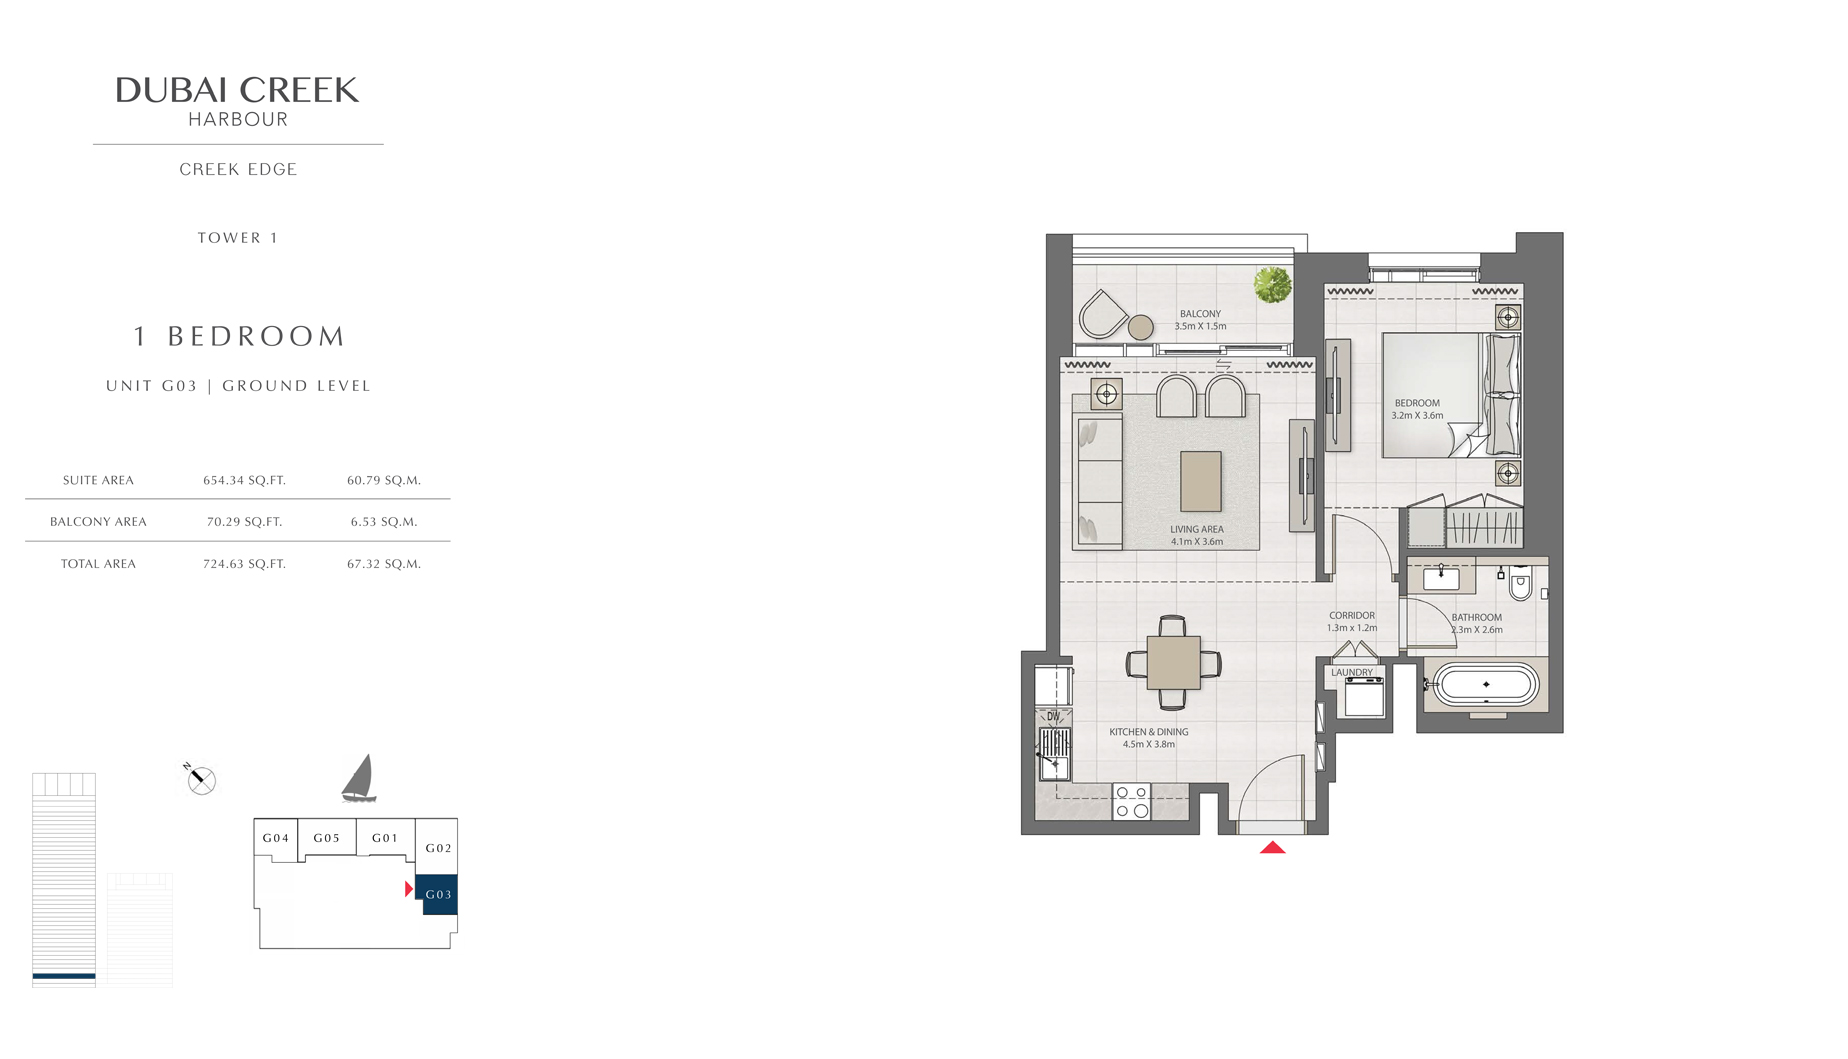 1 Bedroom Tower 1 Unit G03 GL  Size 724 sq.ft